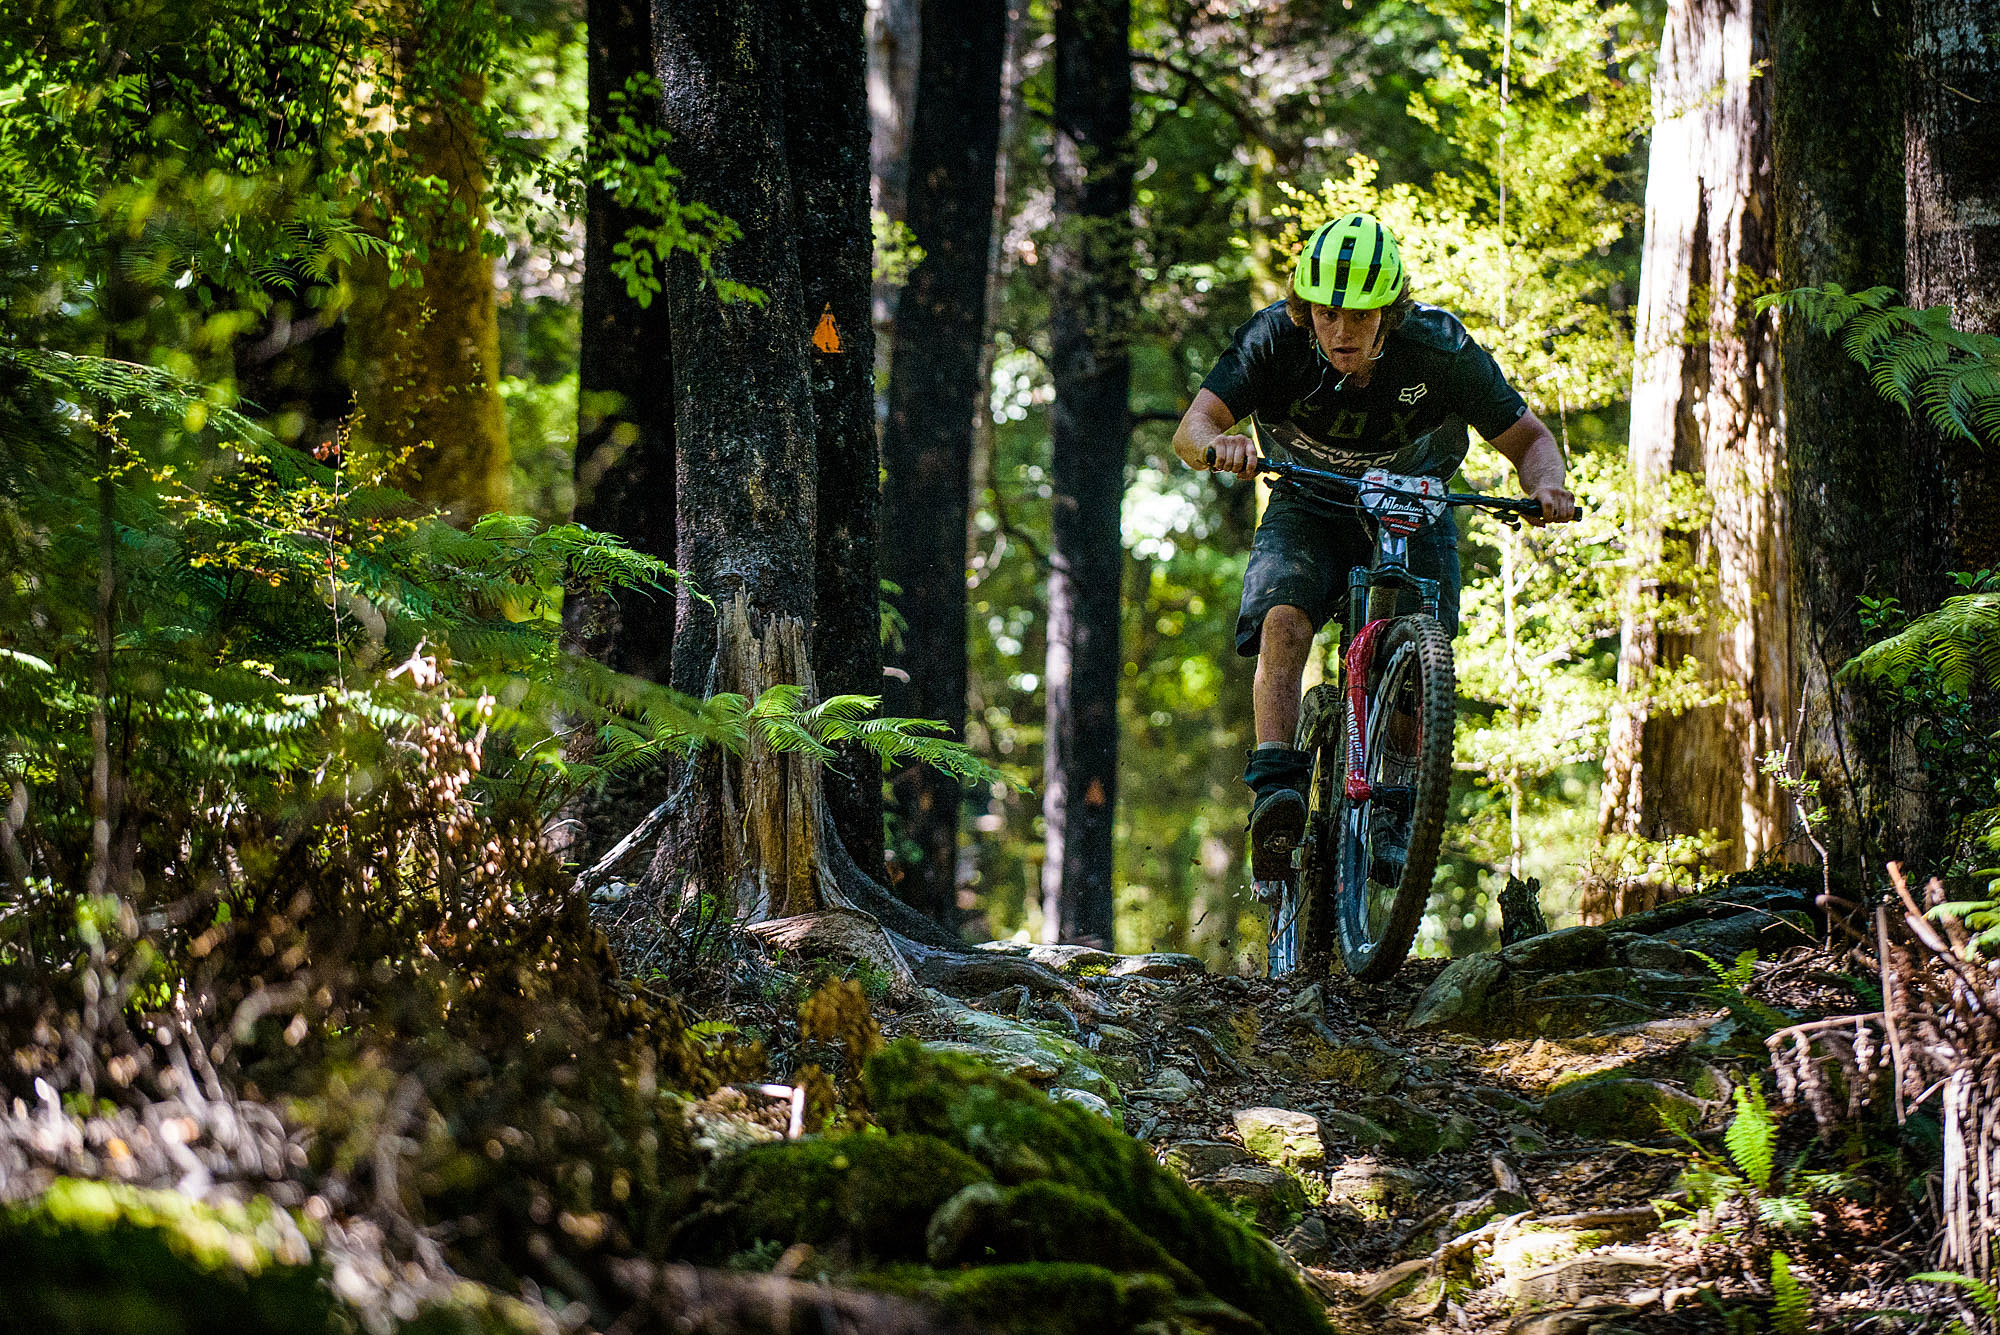 Keegan Wright crashed out on stage one yesterday, hurting his shoulder in the process. He took the rest of the day off but came back today and to ride the trails anyway and posted a 2nd place 10.41 on the monster stage two 16 seconds back from winner Jerome even though he said he was holding back.